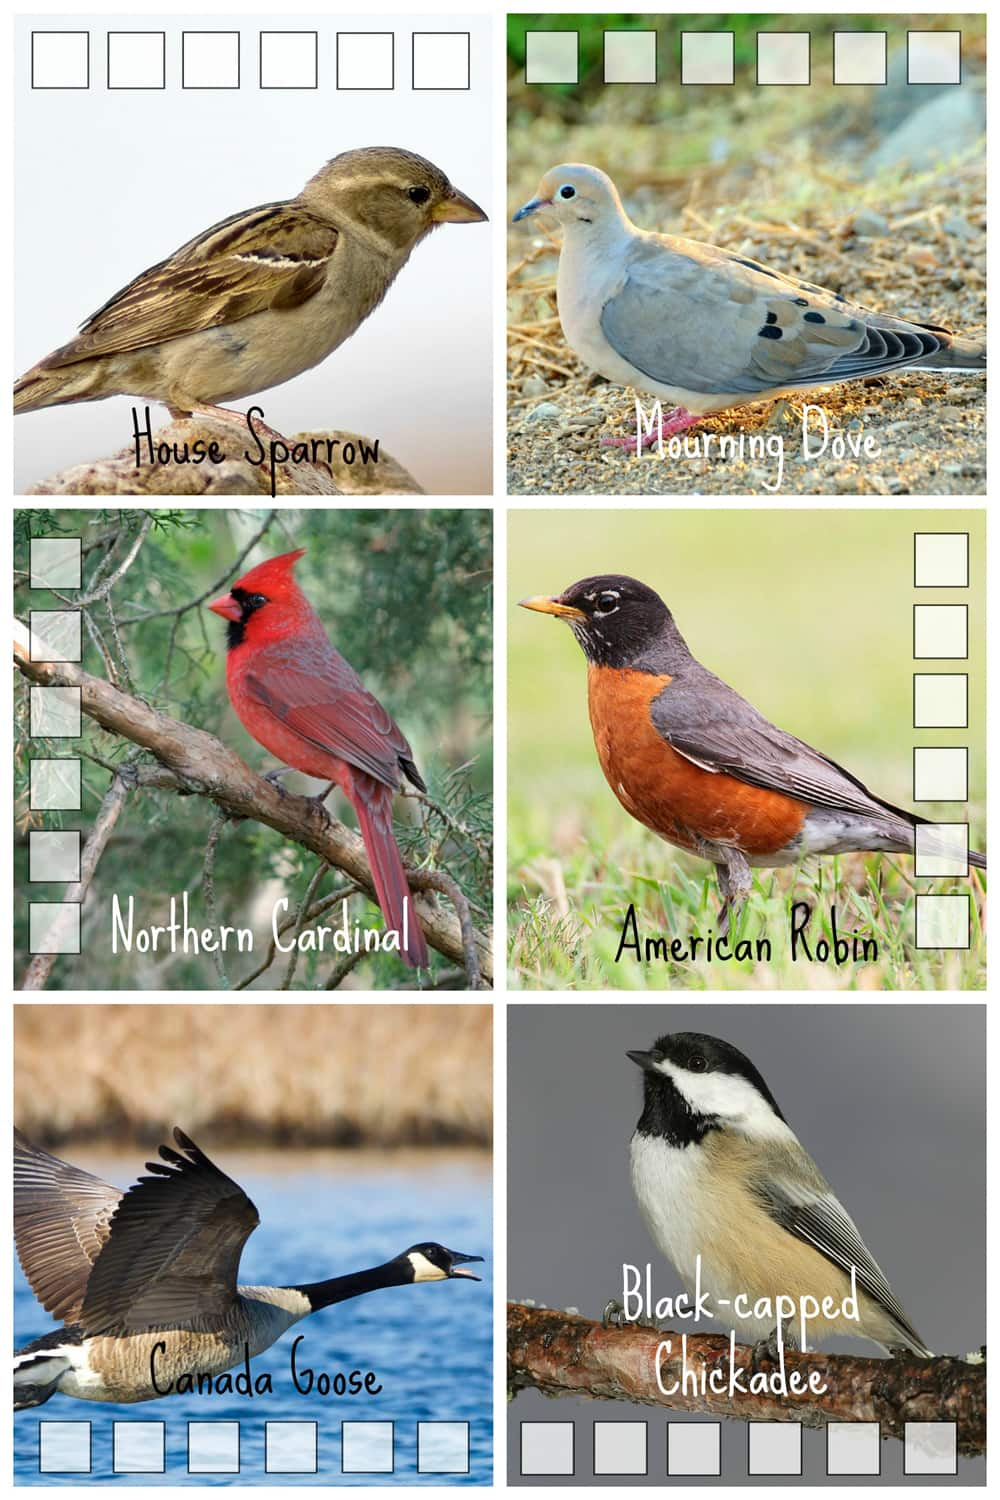 Photos of common birds in southern Ontario.